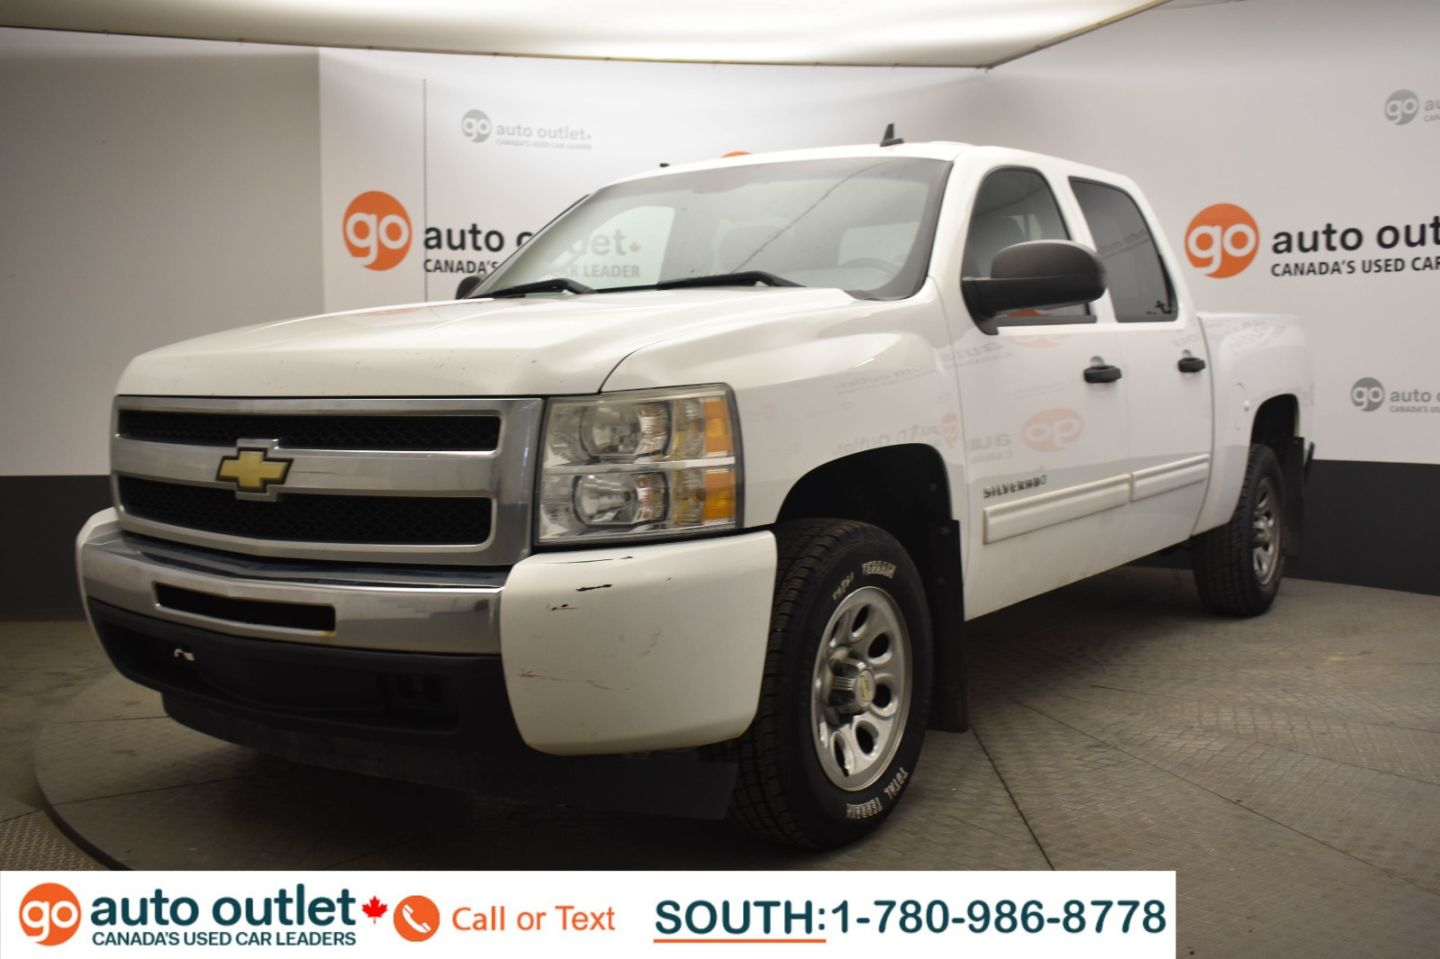 2010 Chevrolet Silverado 1500 LS Cheyenne Edition for sale in Leduc, Alberta